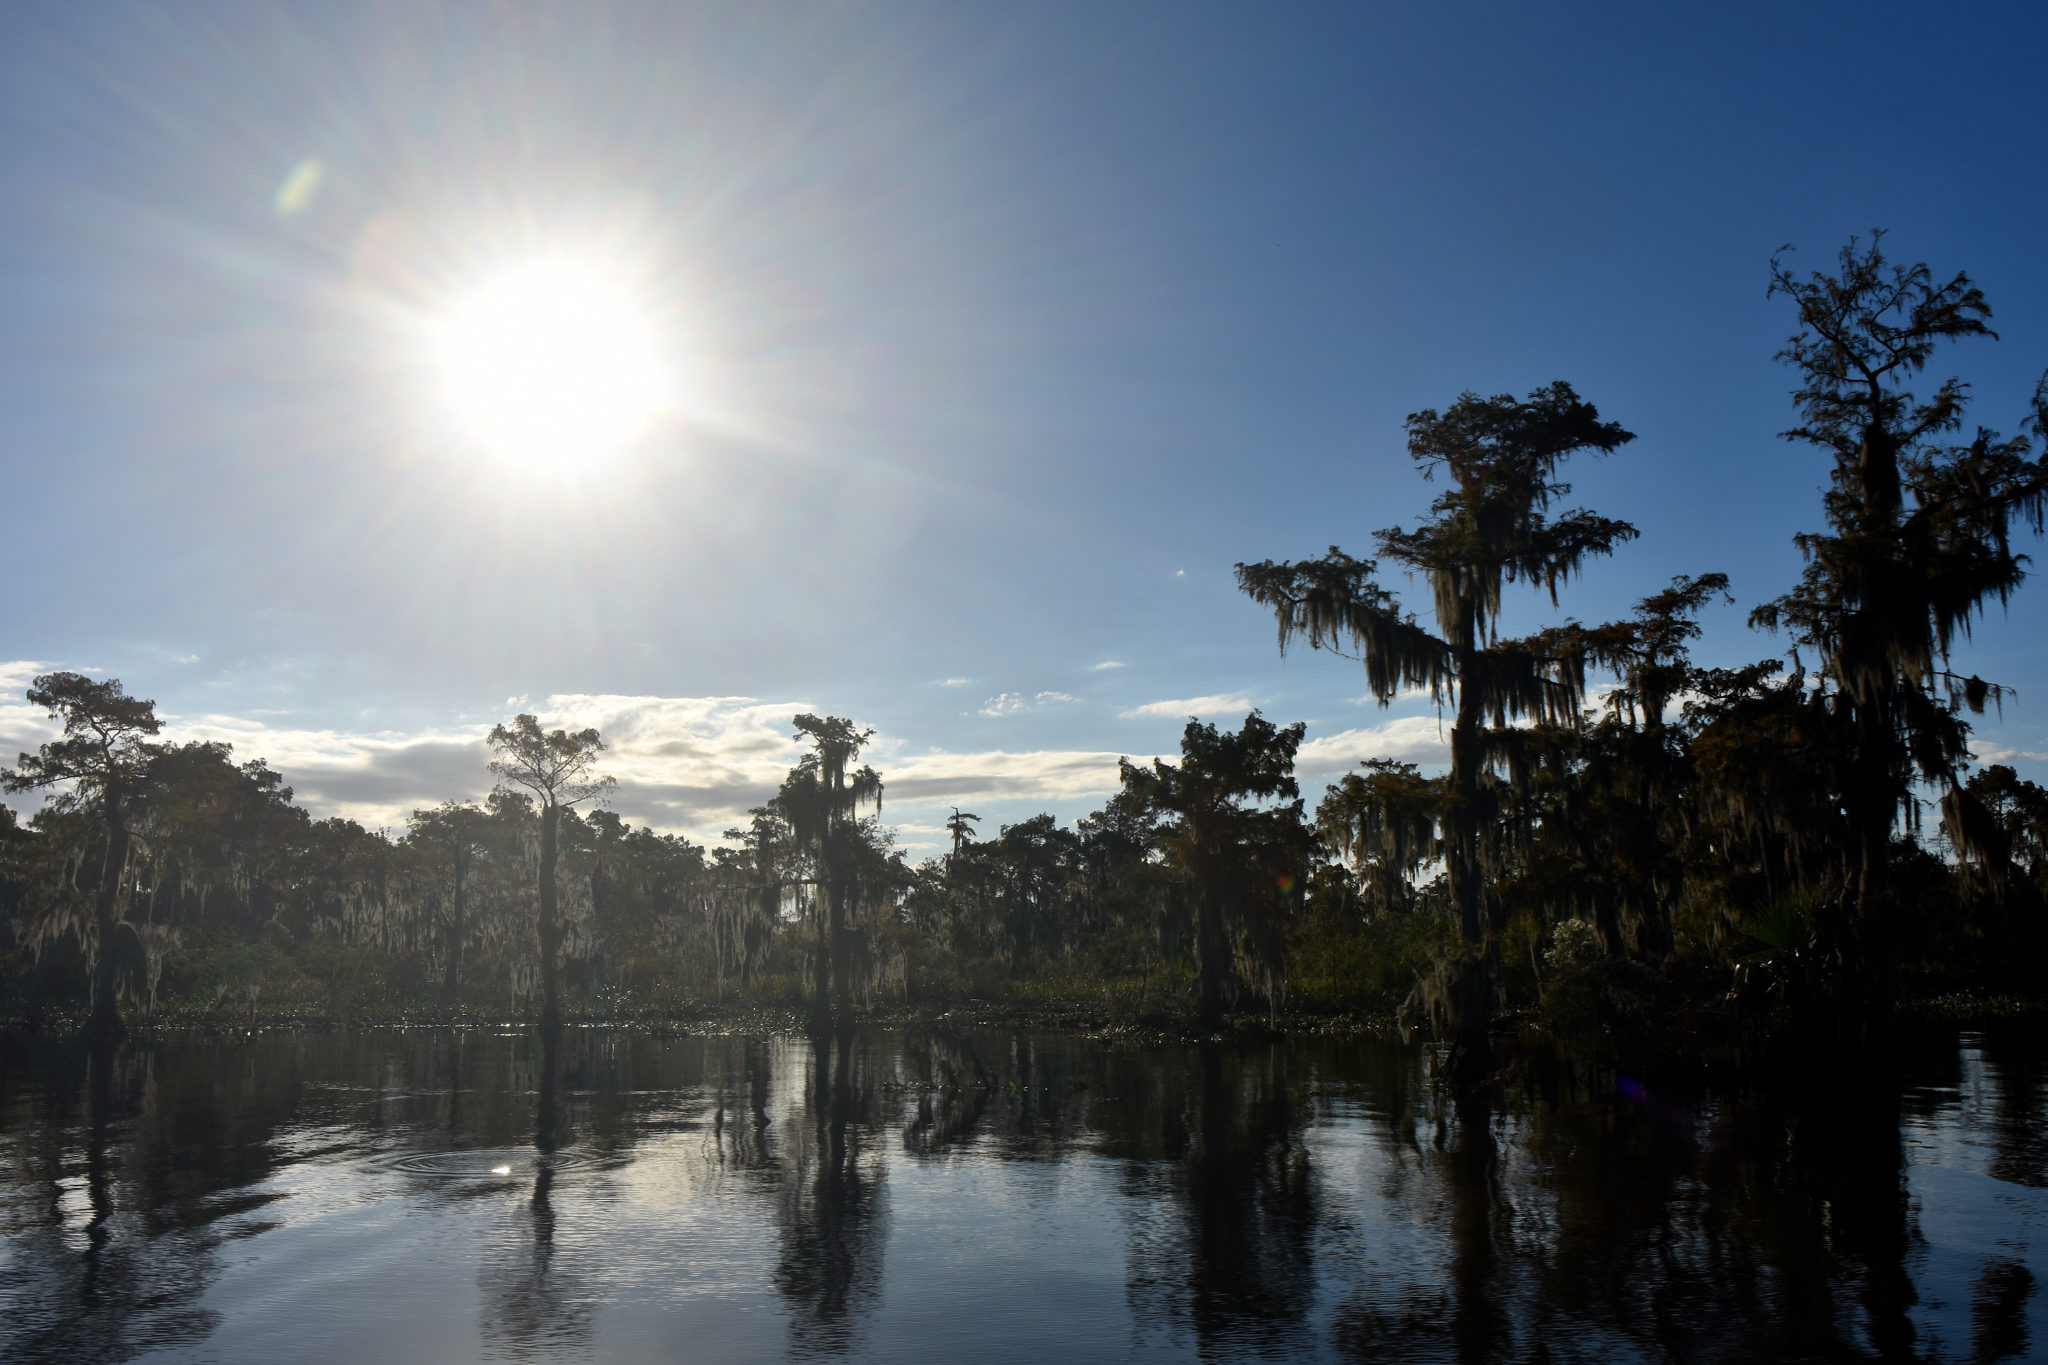 tours in new orleans, swamp tours in new orleans